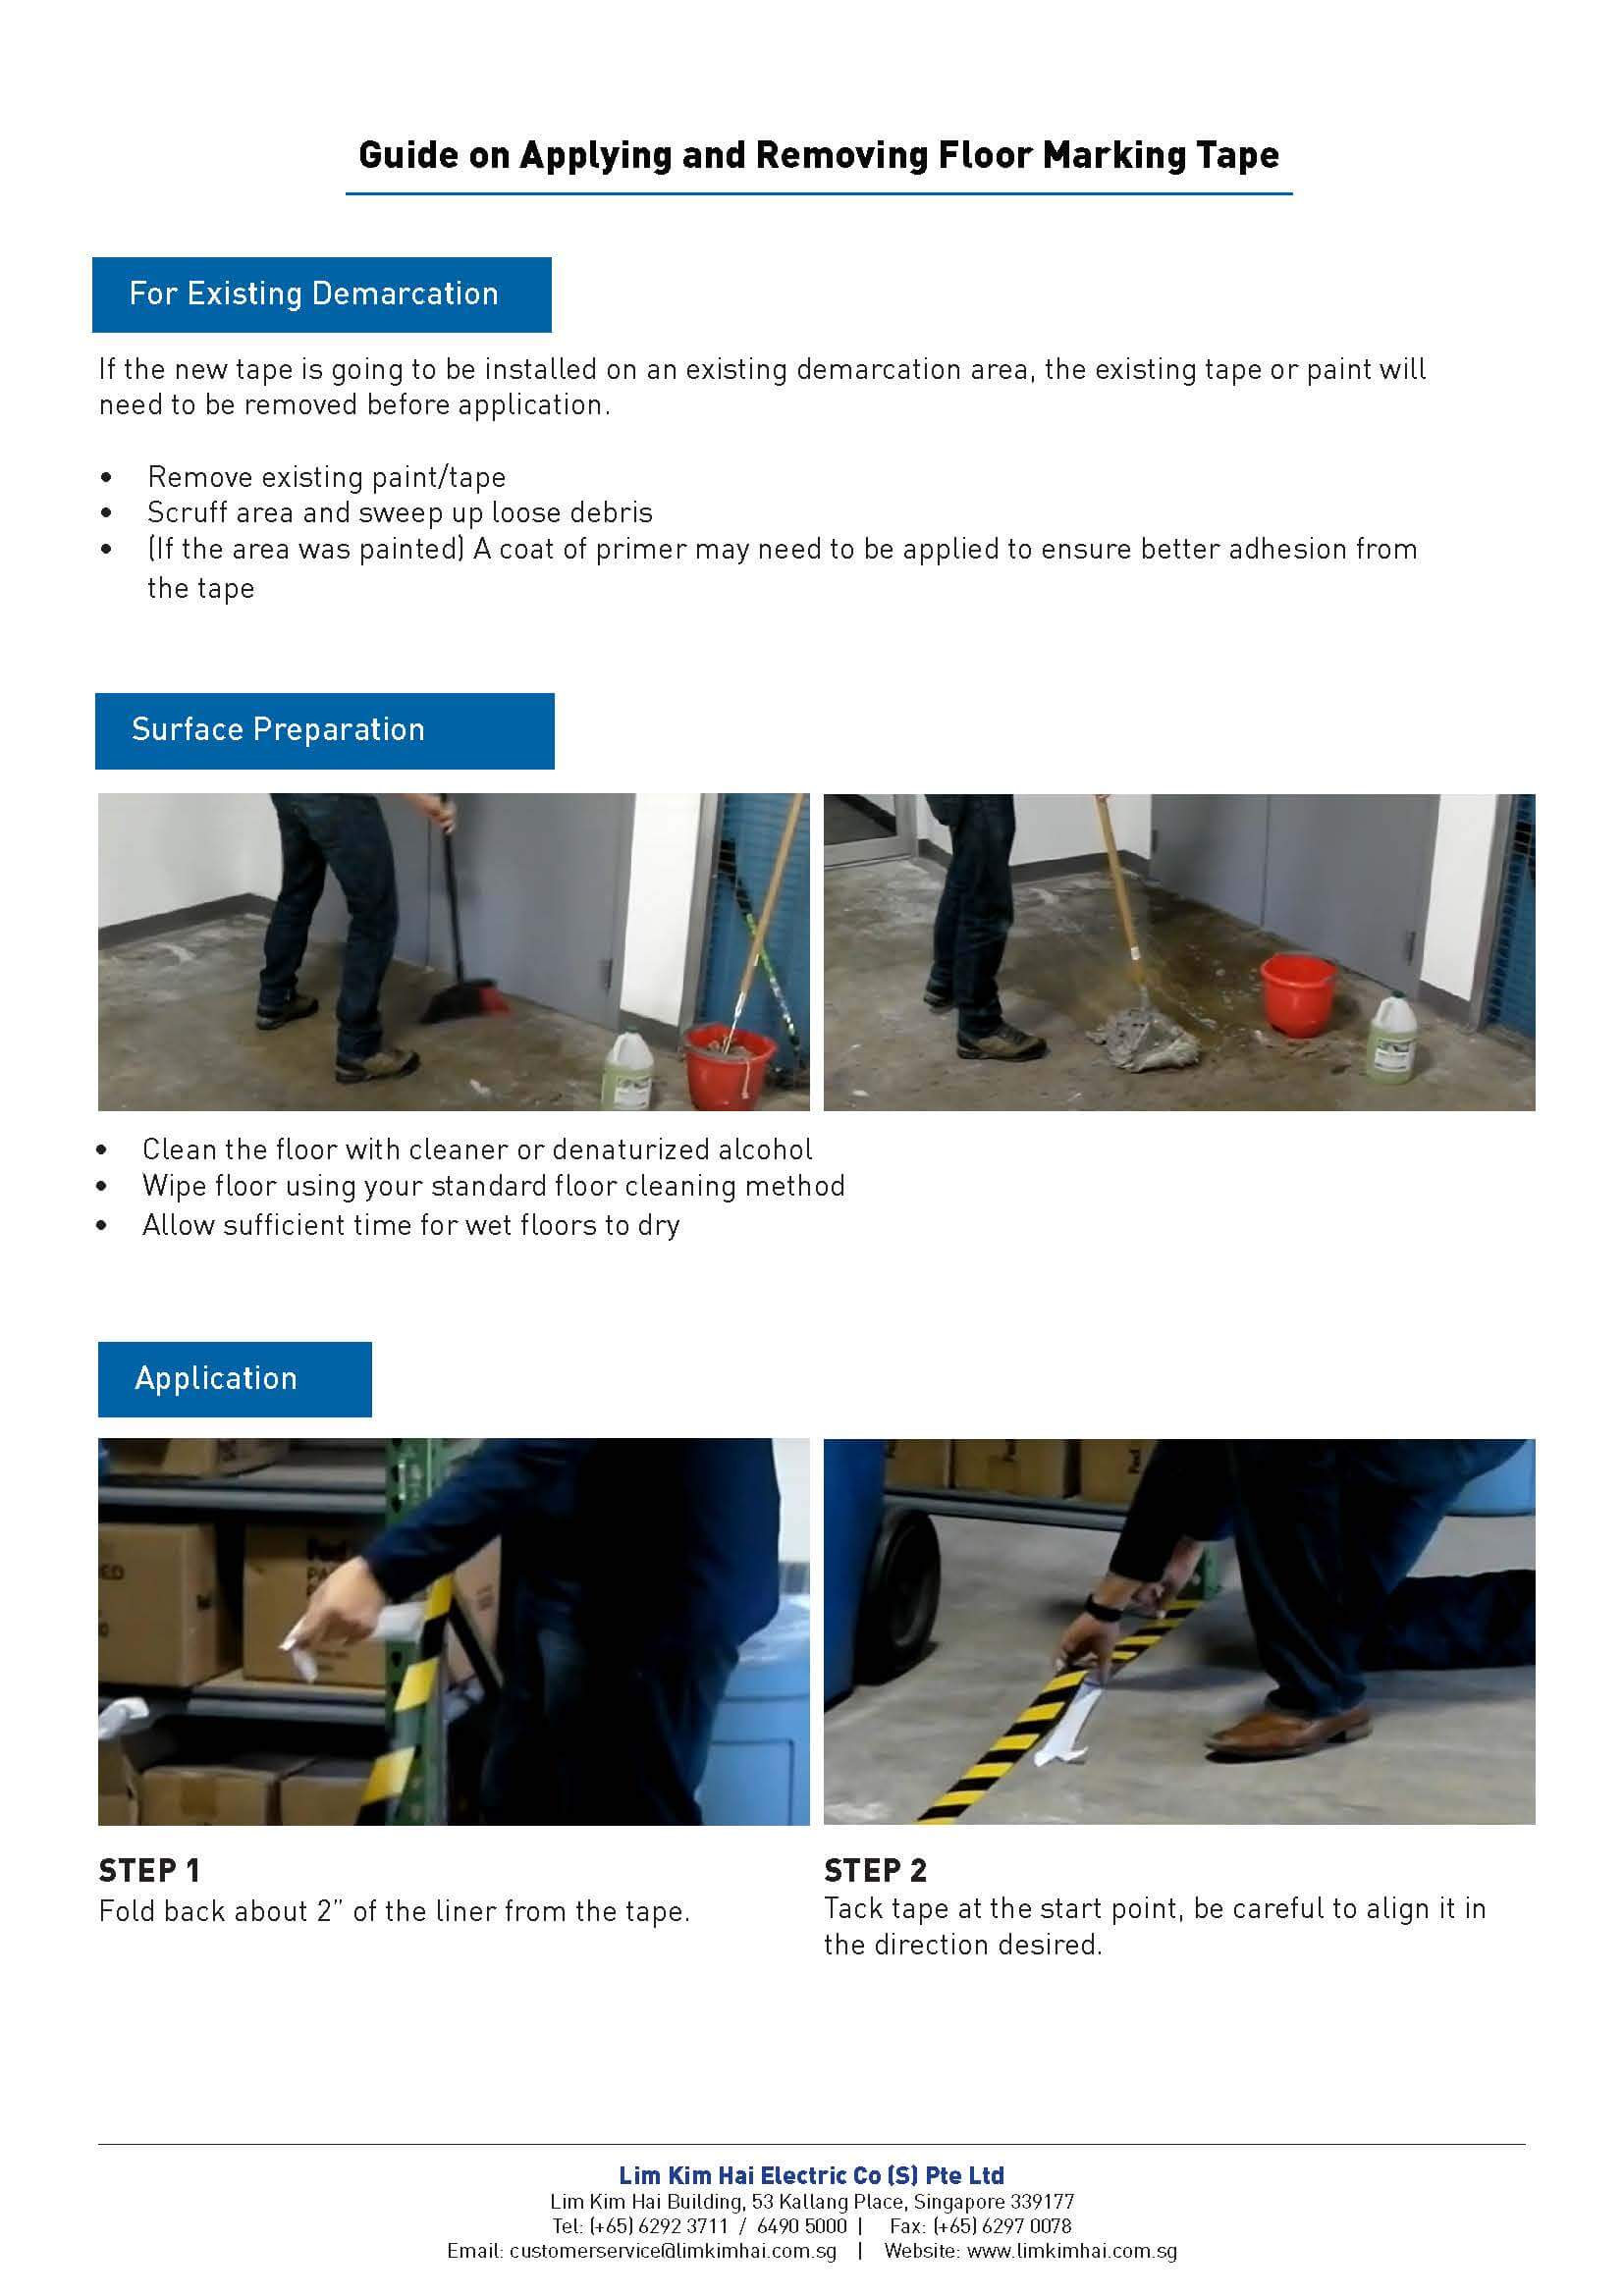 Guide on Applying Floor Marking Tape_Page